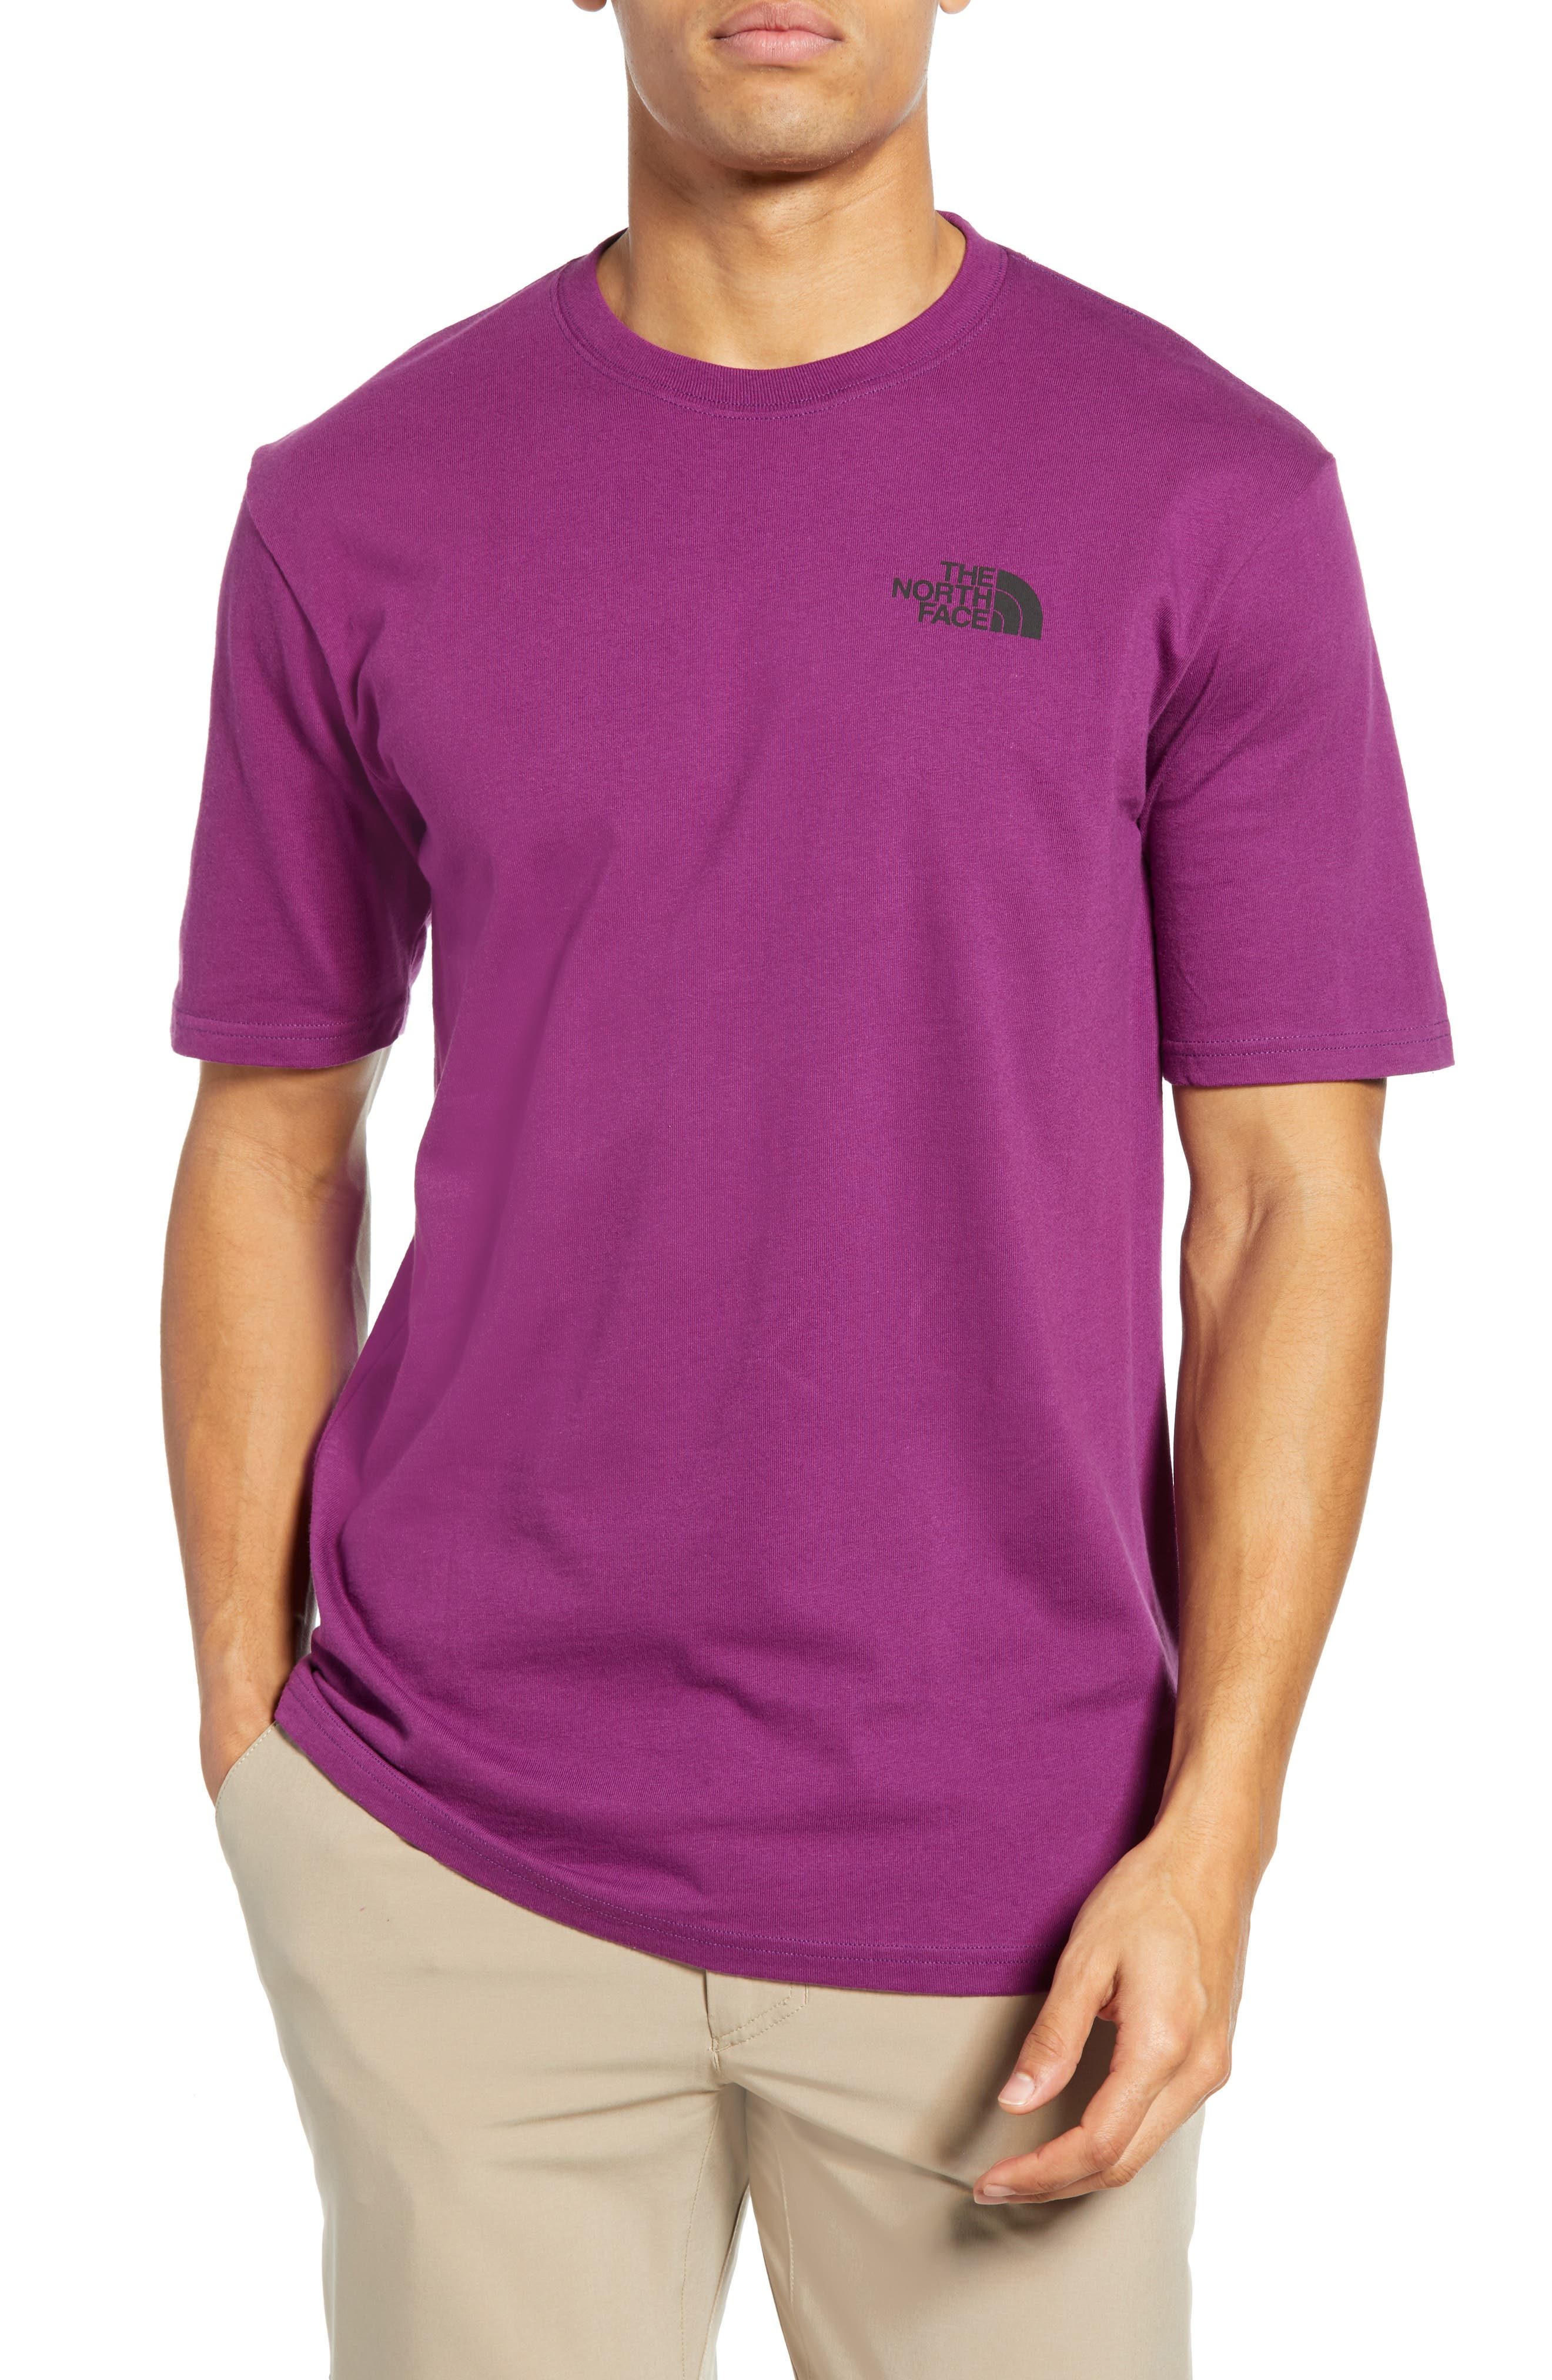 The North Face 1992 Rage Collection Graphic T-Shirt, Purple